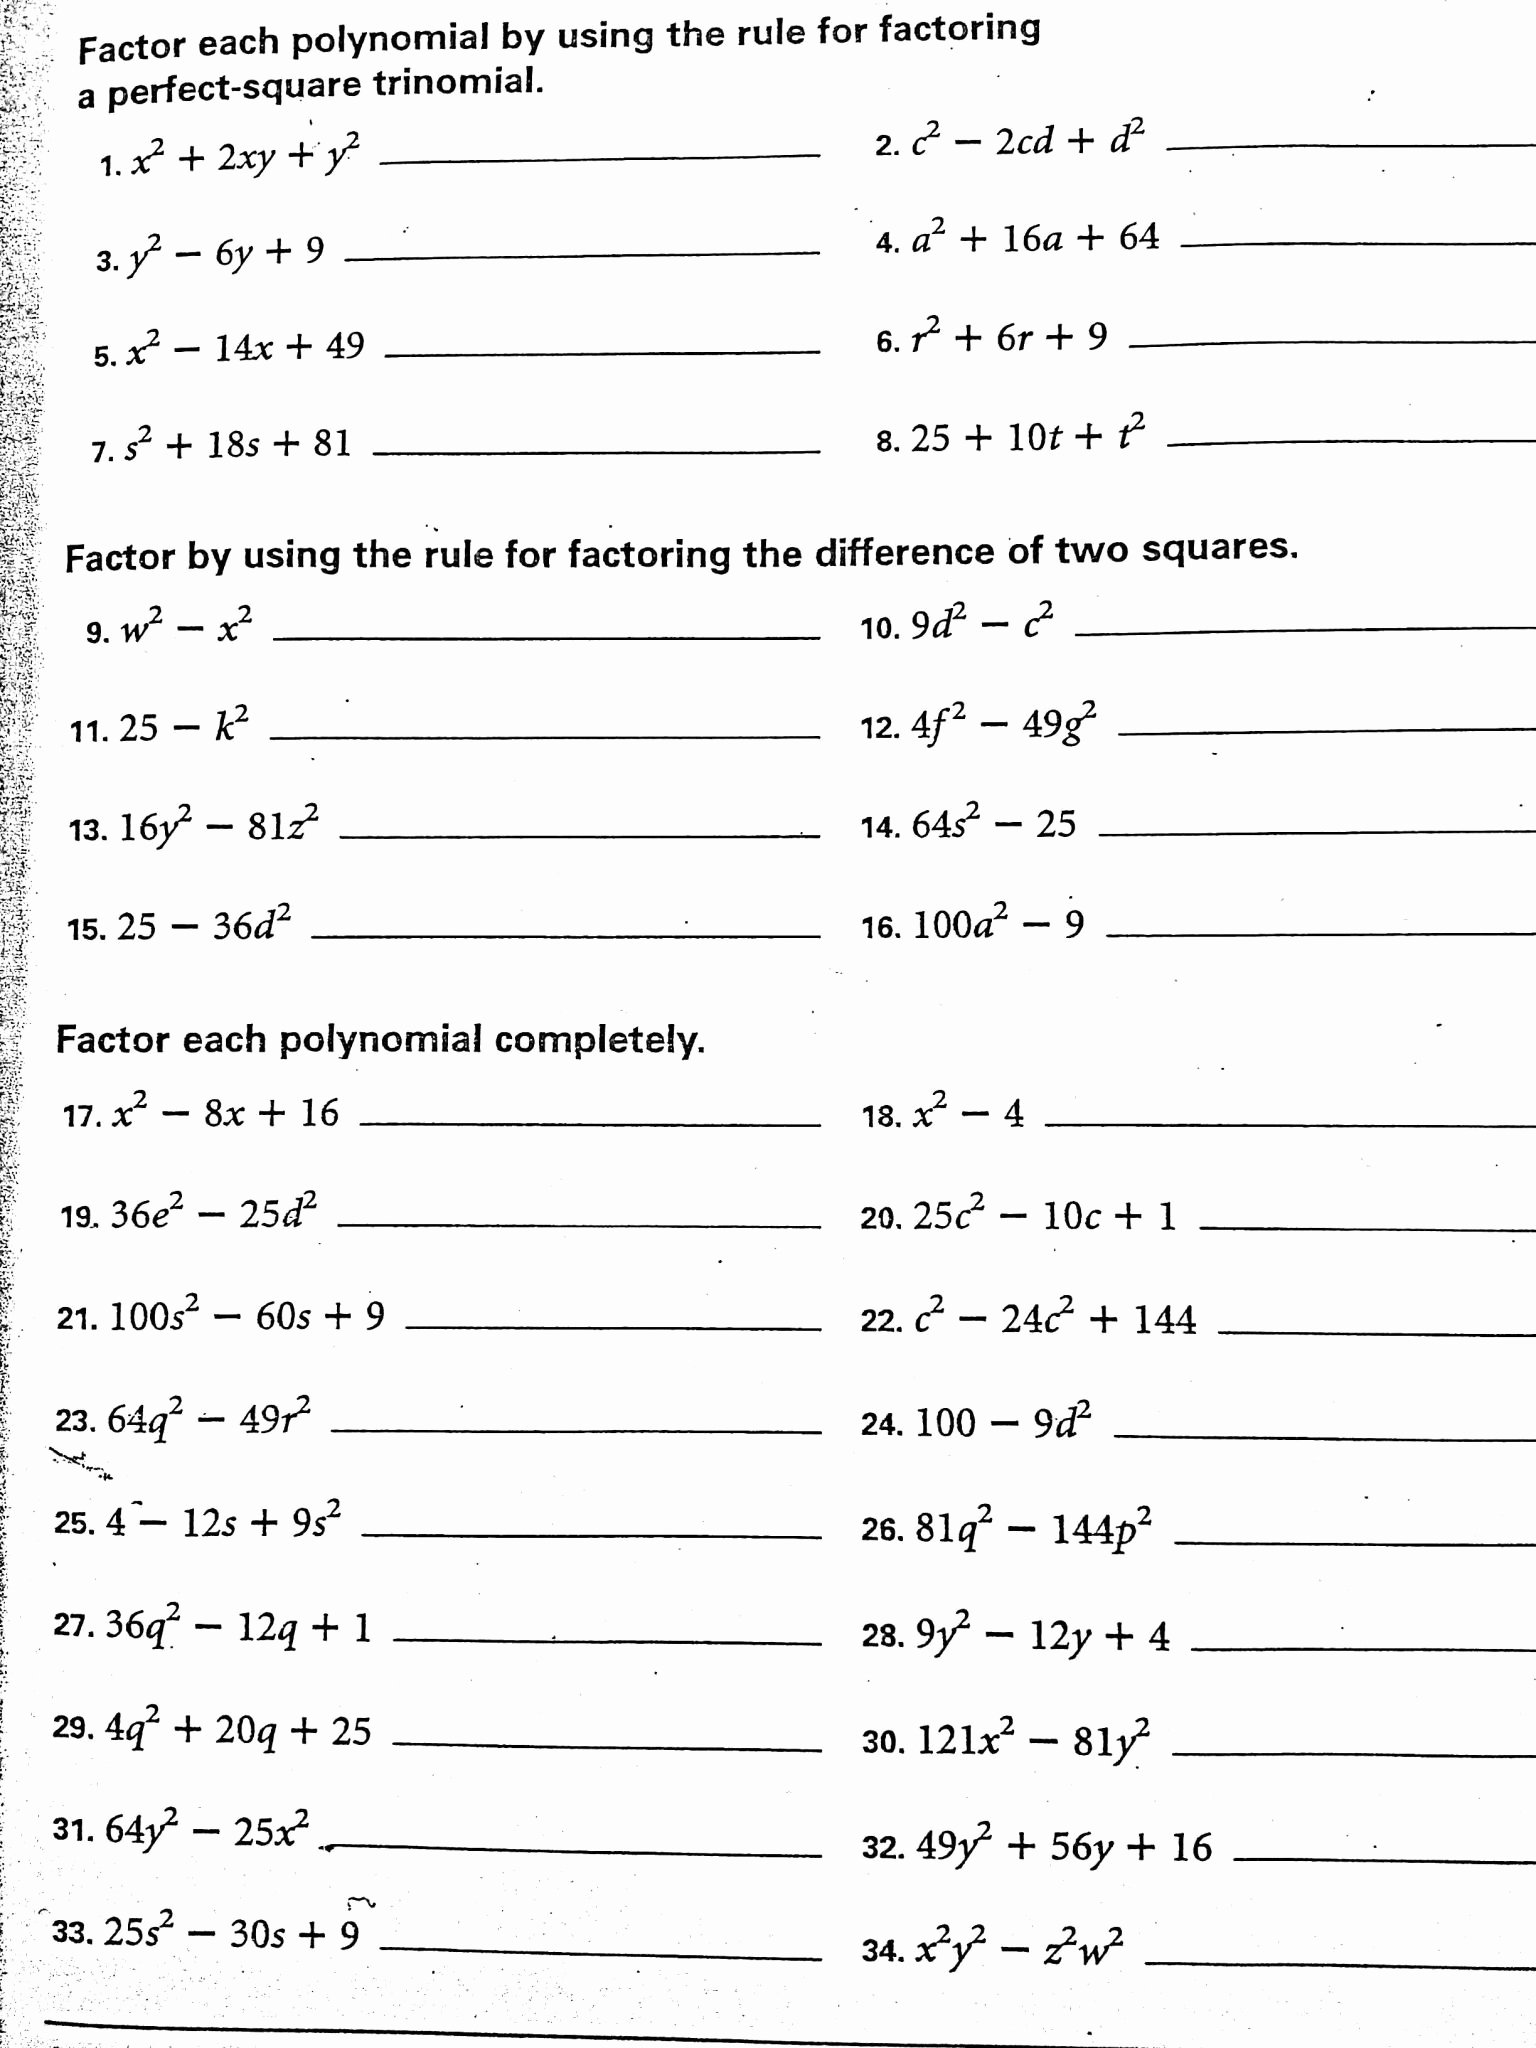 Factors Of Production Worksheet Answers Luxury Greatest Mon Factor Worksheet Answer Key